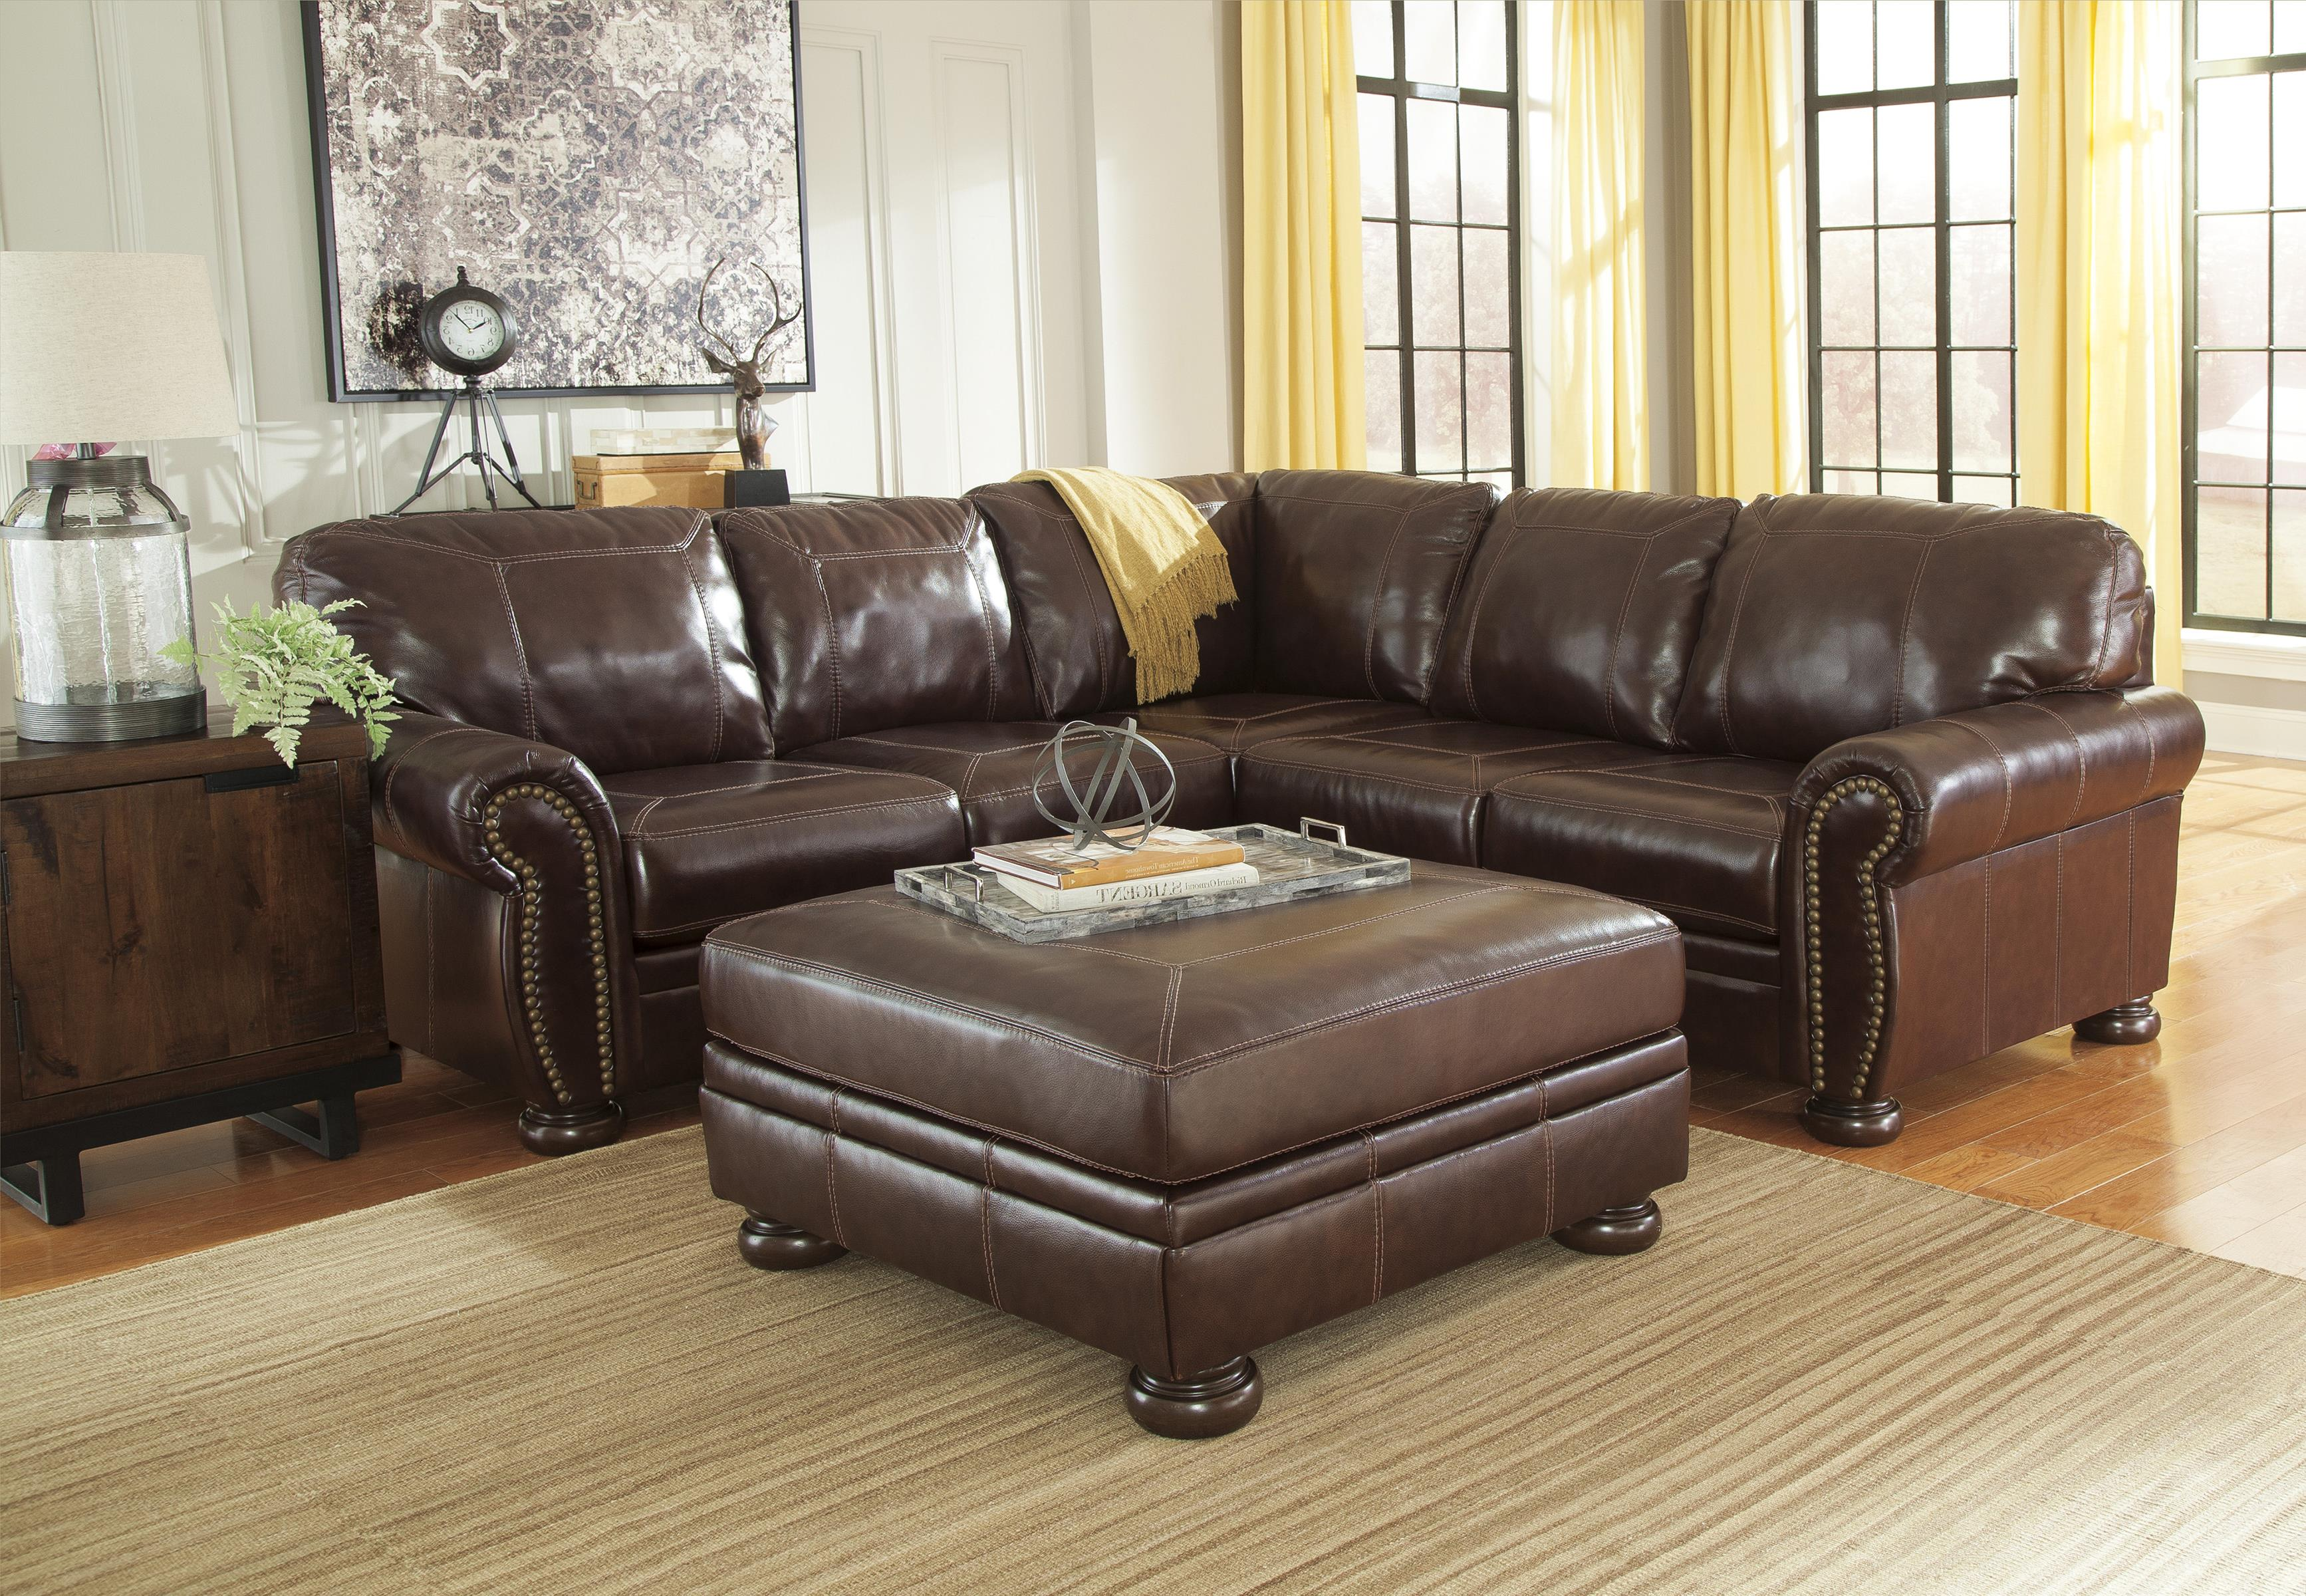 Signature Design by Ashley Banner Stationary Living Room Group - Item Number: 50404 Living Room Group 4